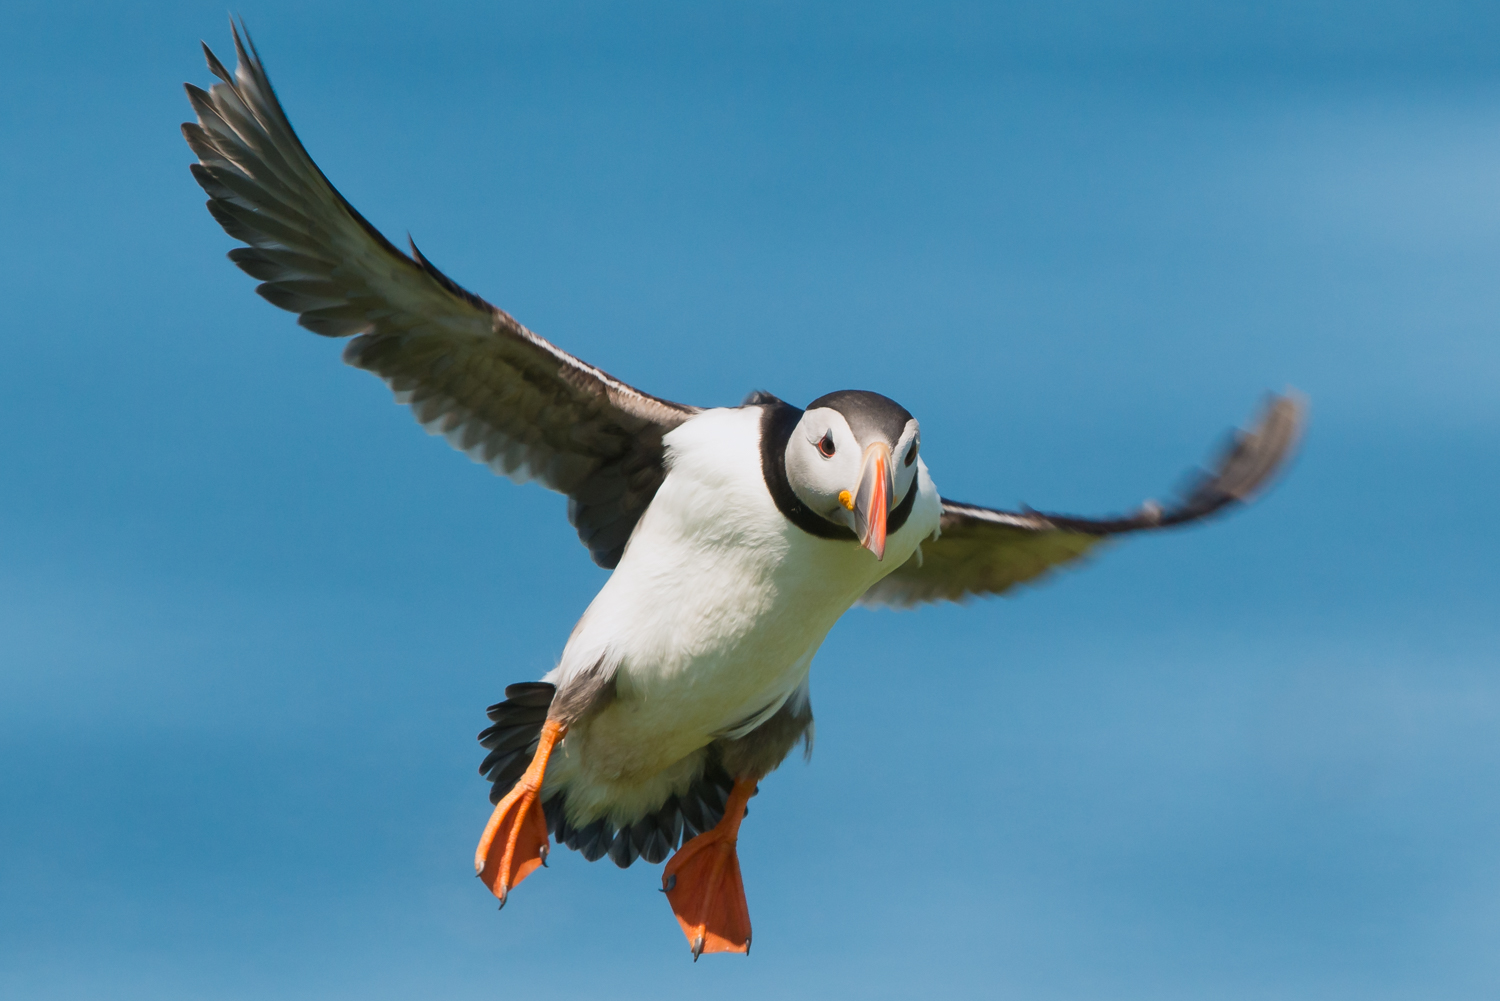 Atlantic Puffin in flight, UK seabirds, wildlife